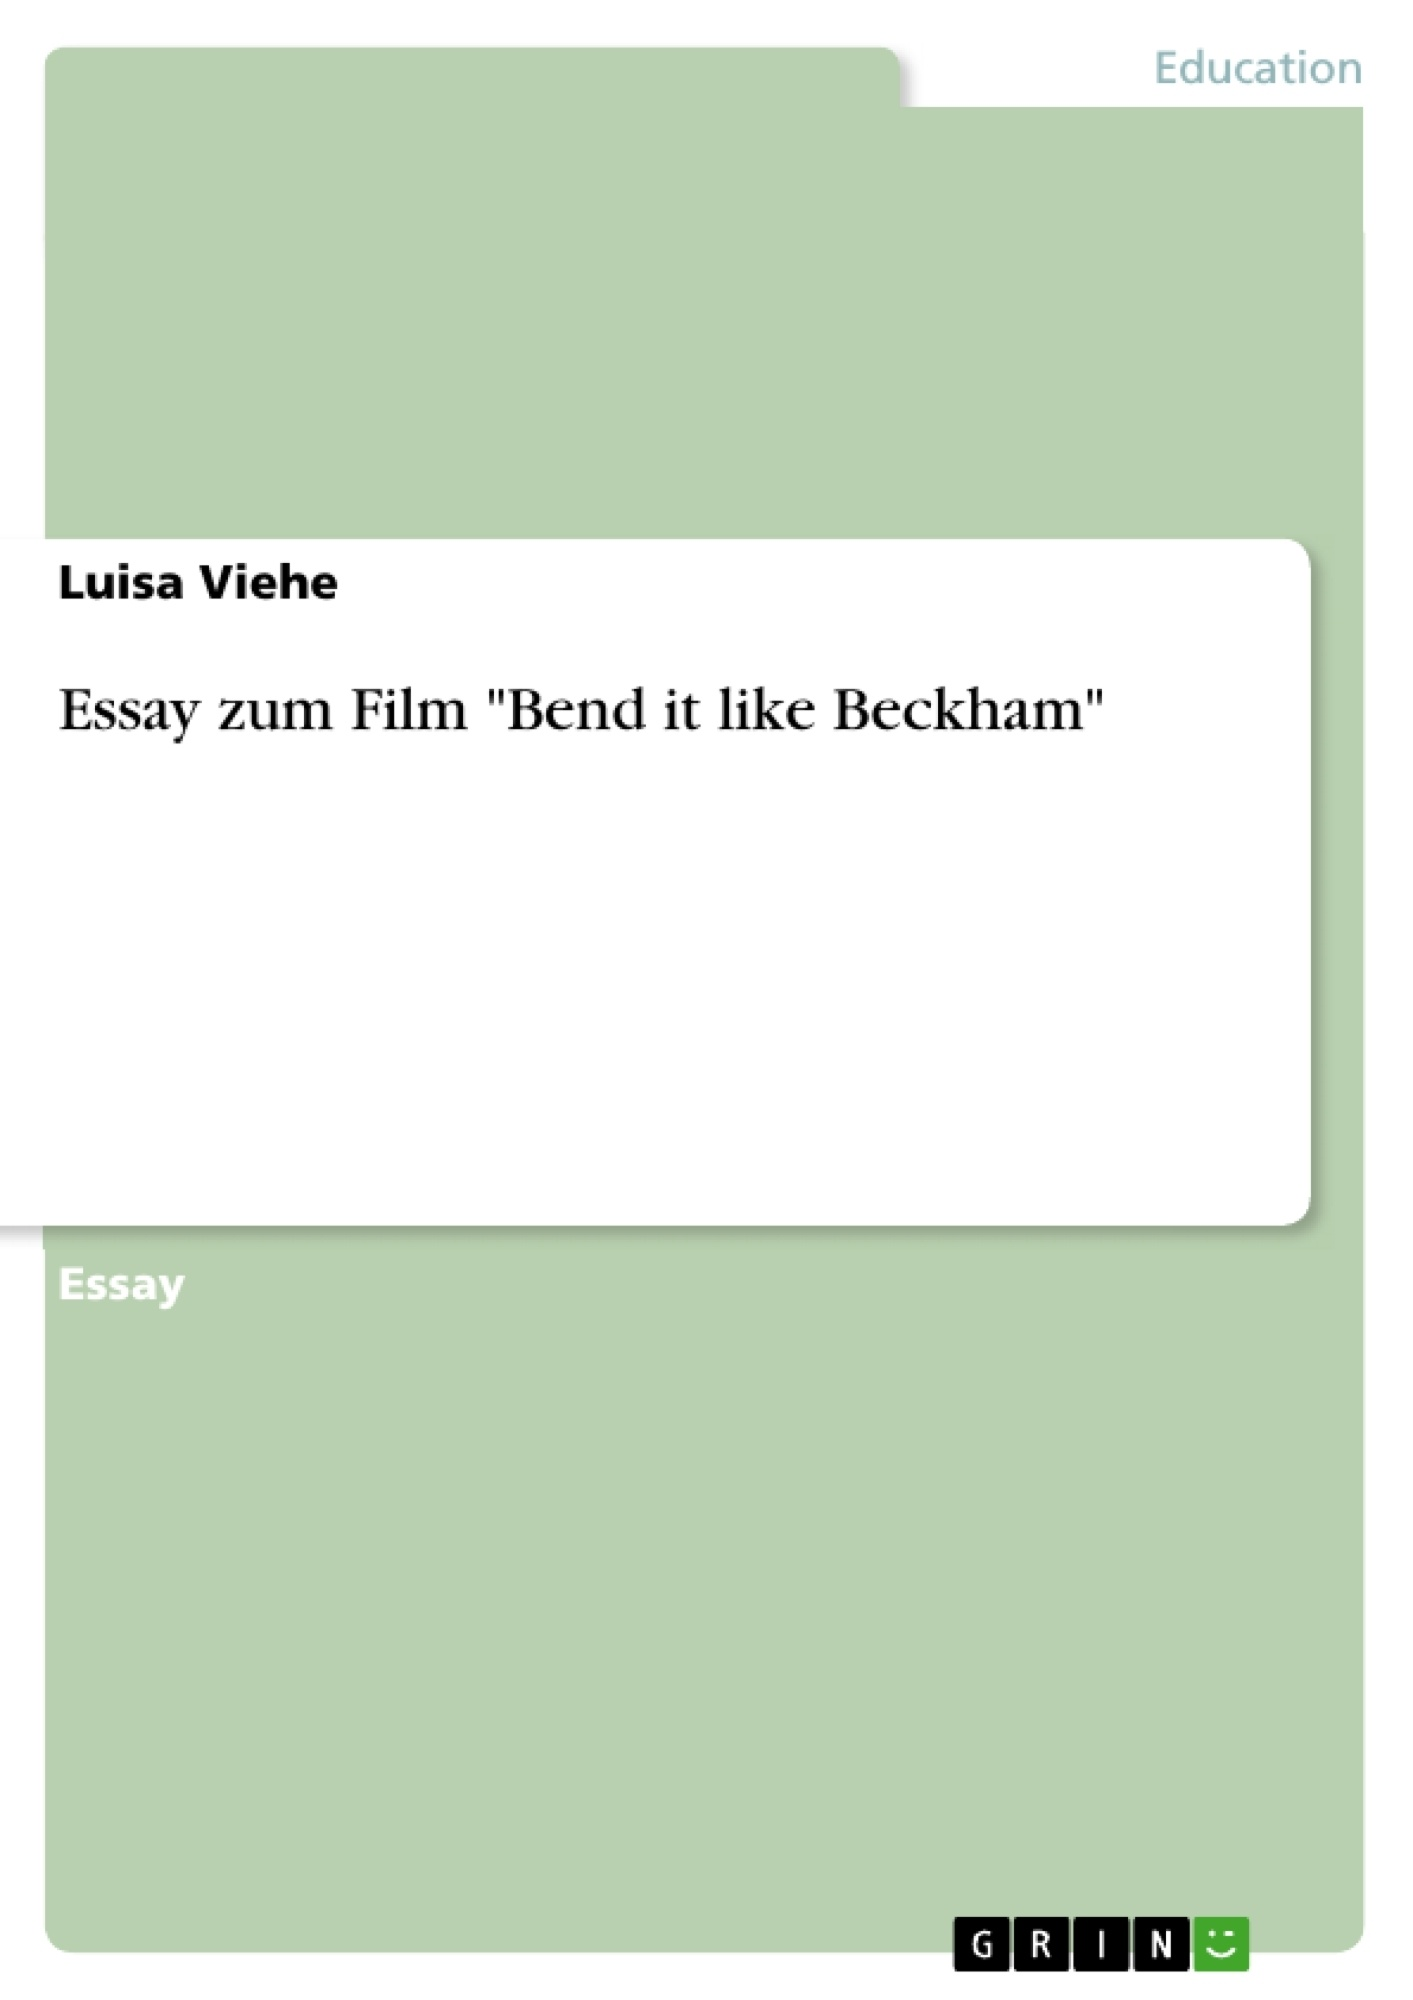 essay zum film bend it like beckham publish your master s essay zum film bend it like beckham publish your master s thesis bachelor s thesis essay or term paper